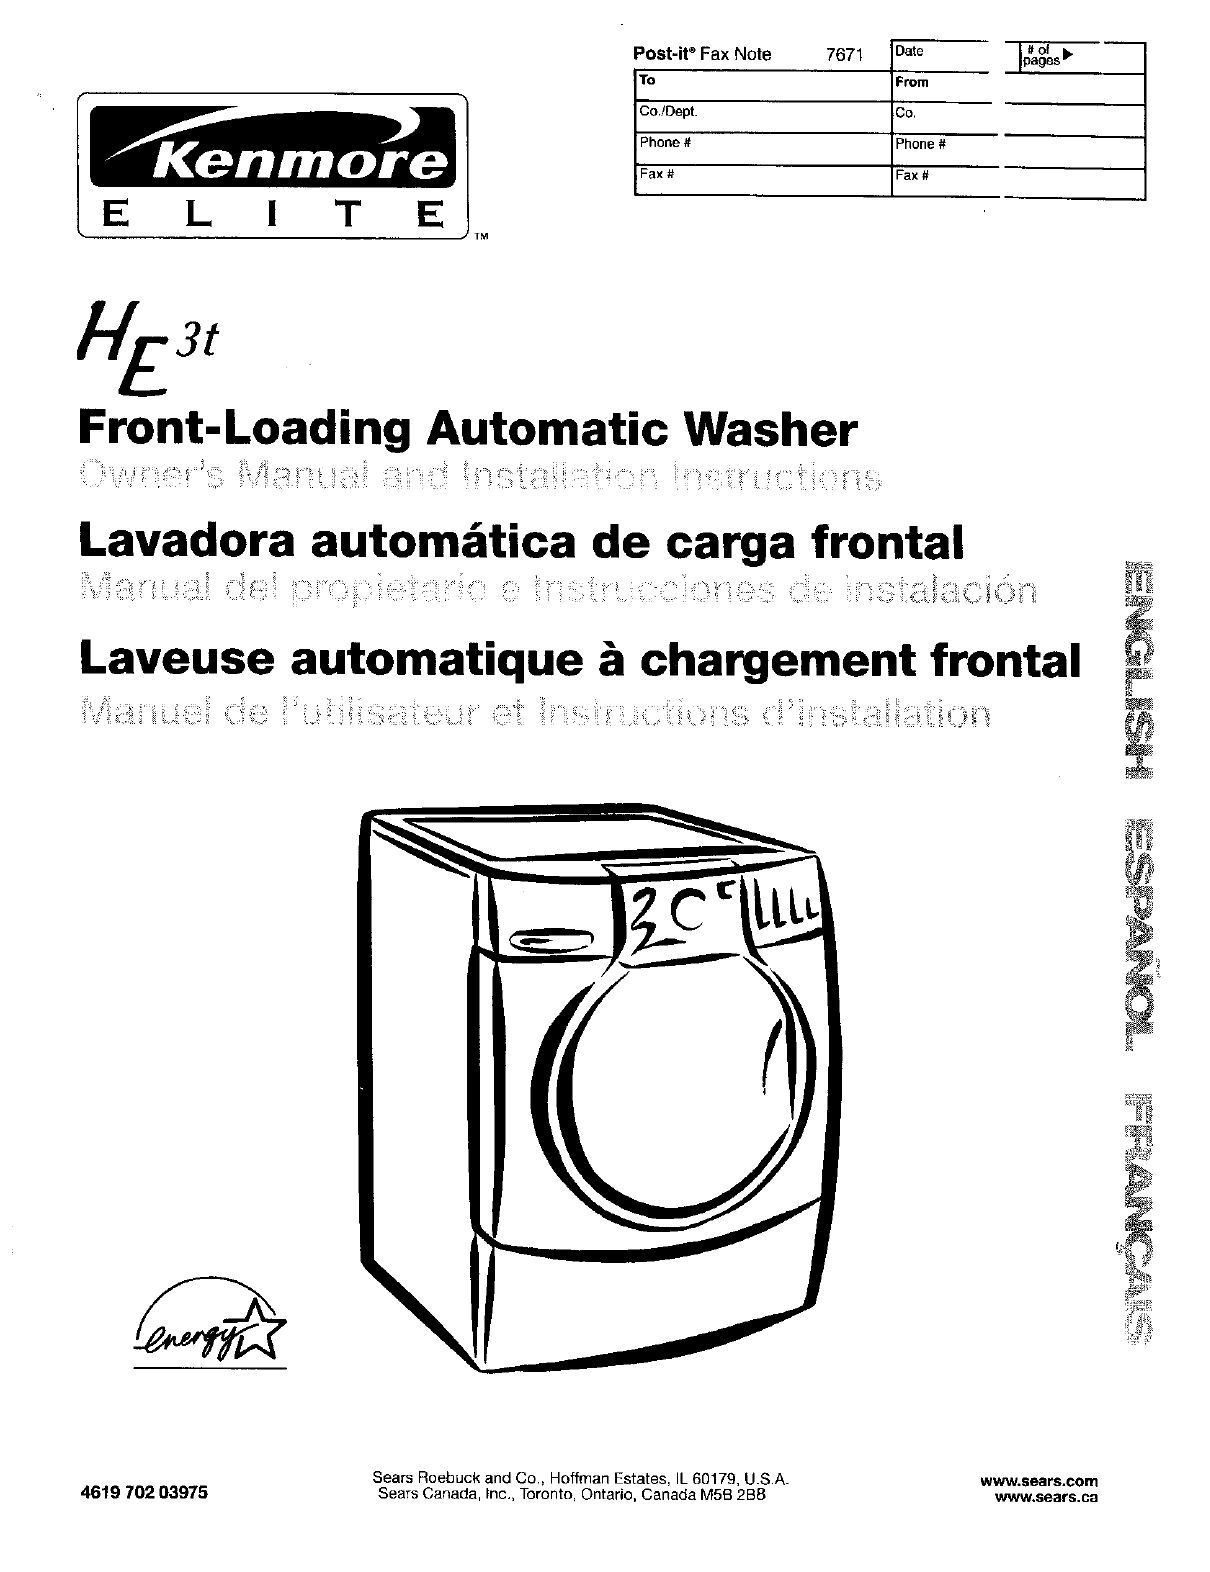 kenmore elite 11044932200 user manual automatic washer horizontal rh usermanual wiki kenmore elite owners manual refrigerator Kenmore Elite Stove Manual